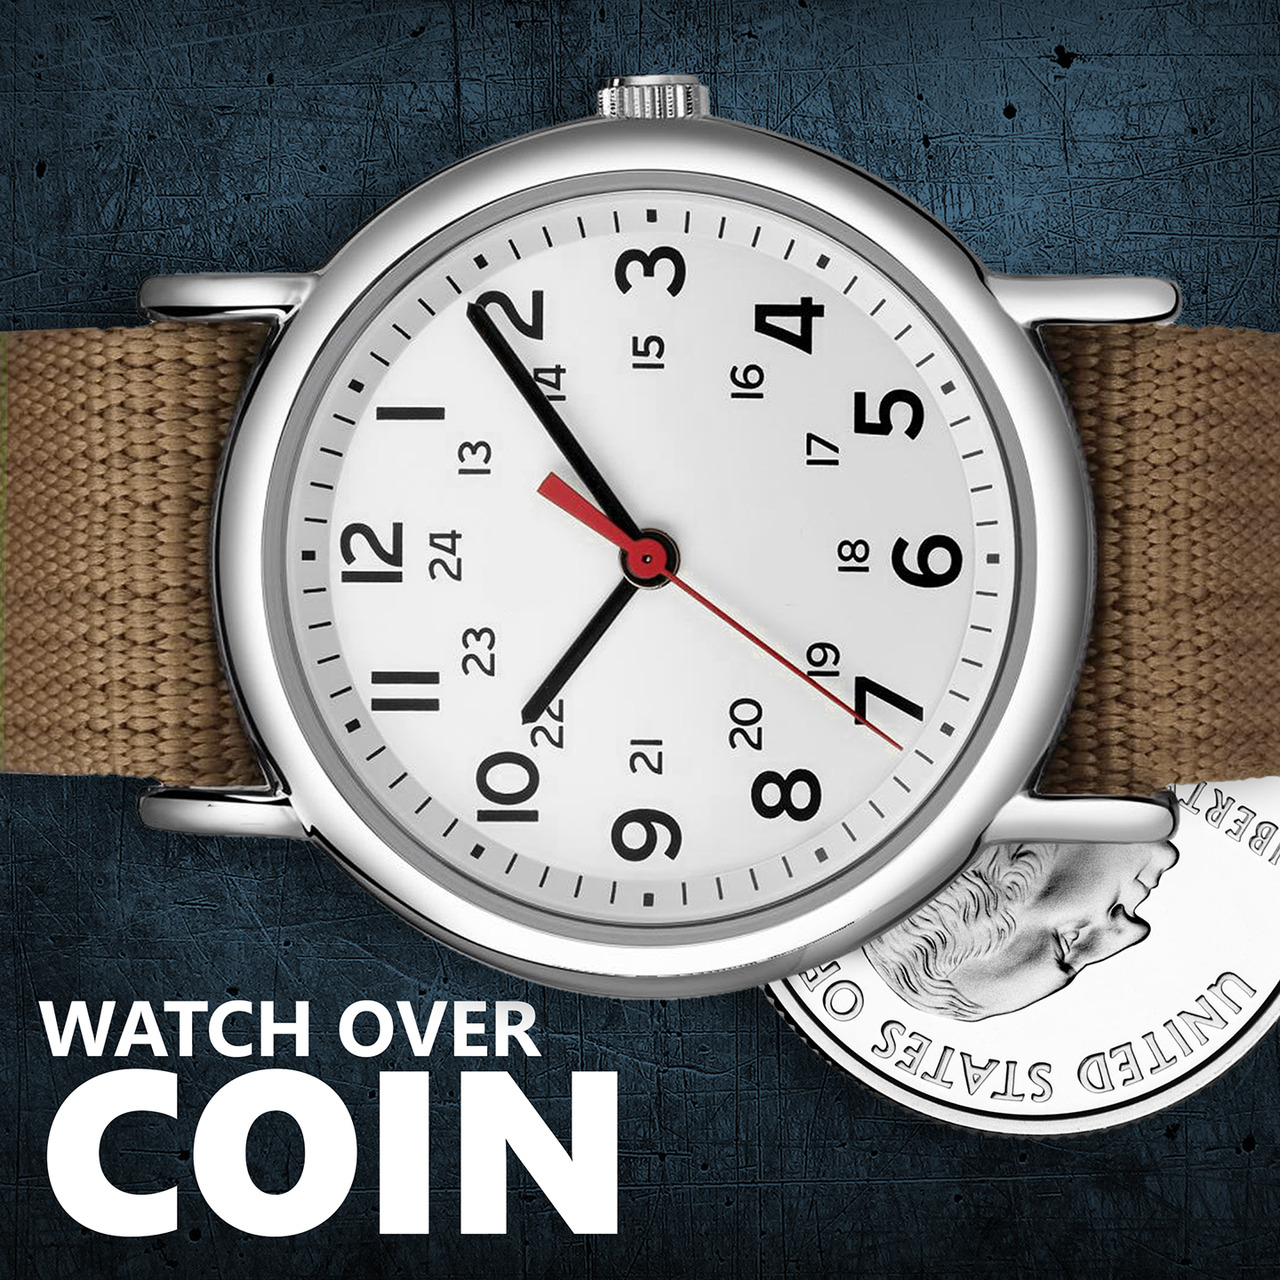 Gregory Wilson - Watch Over Coin